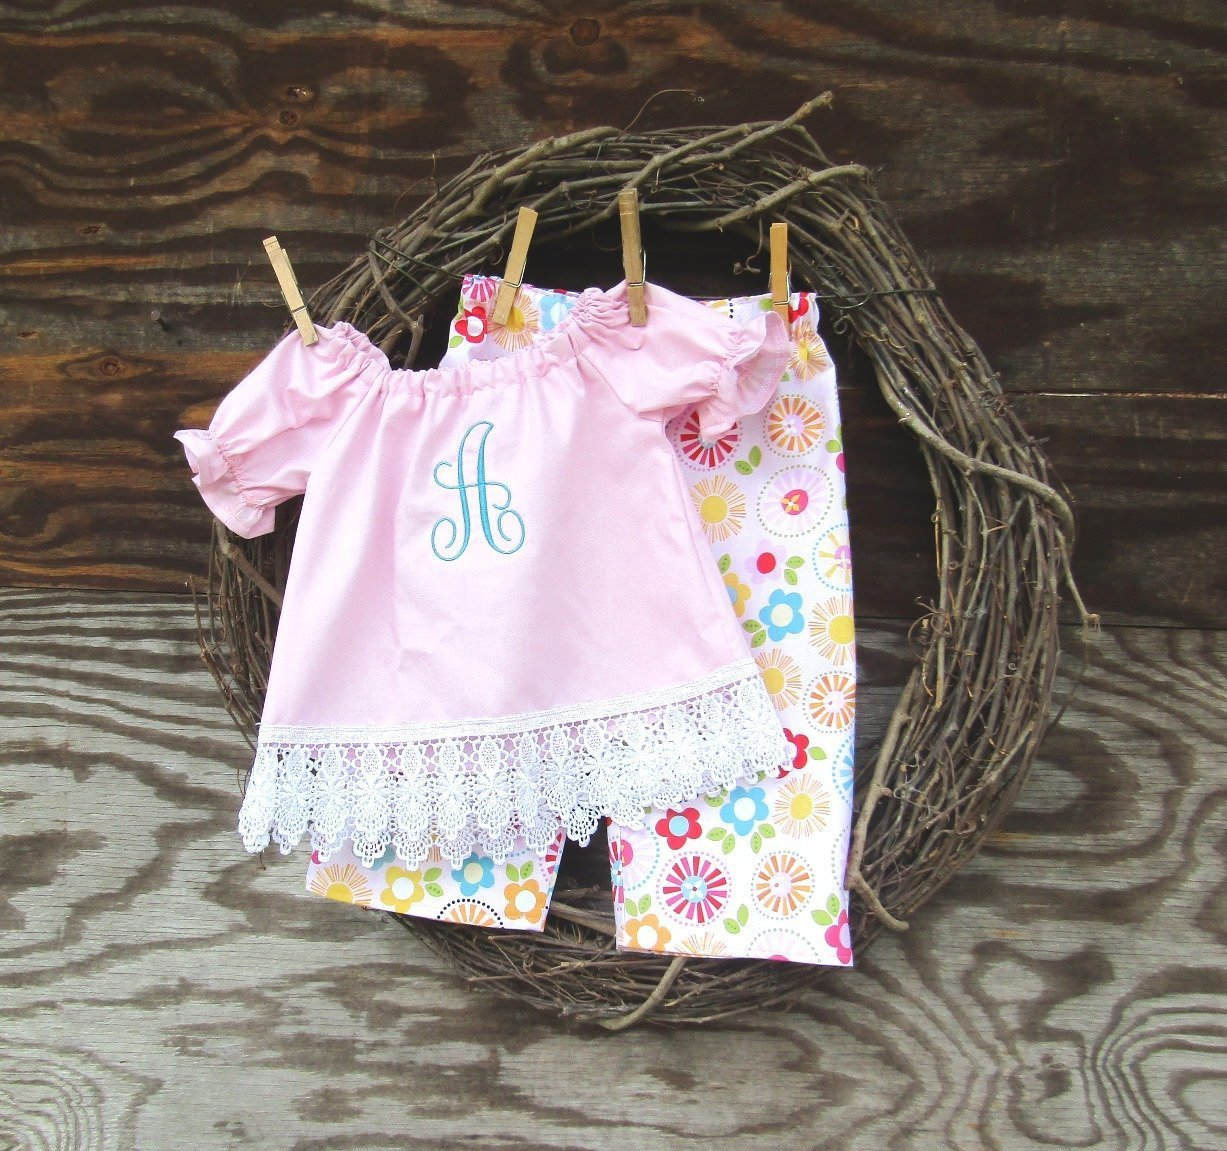 Baby Girls Pink Outfit, Monogrammed, Lace Trimmed by SouthernSisters2